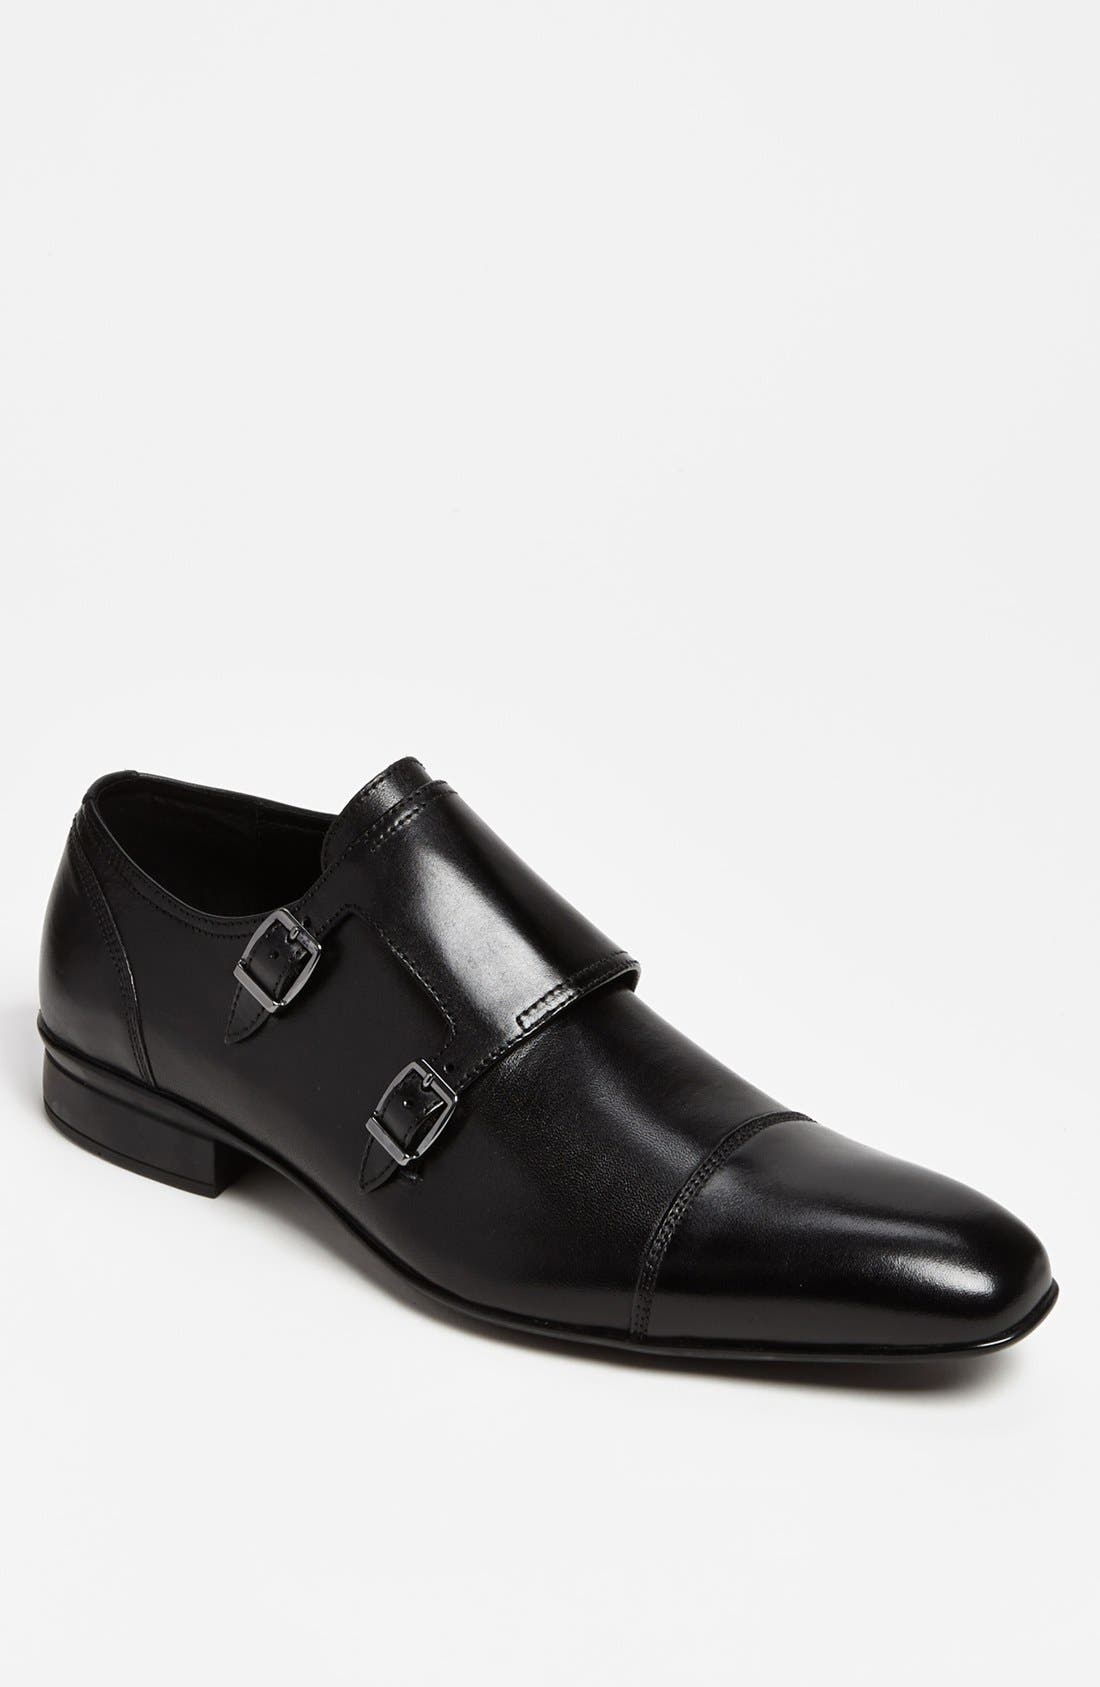 Alternate Image 1 Selected - Kenneth Cole New York 'Highest Rate-d' Double Monk Strap Slip-On